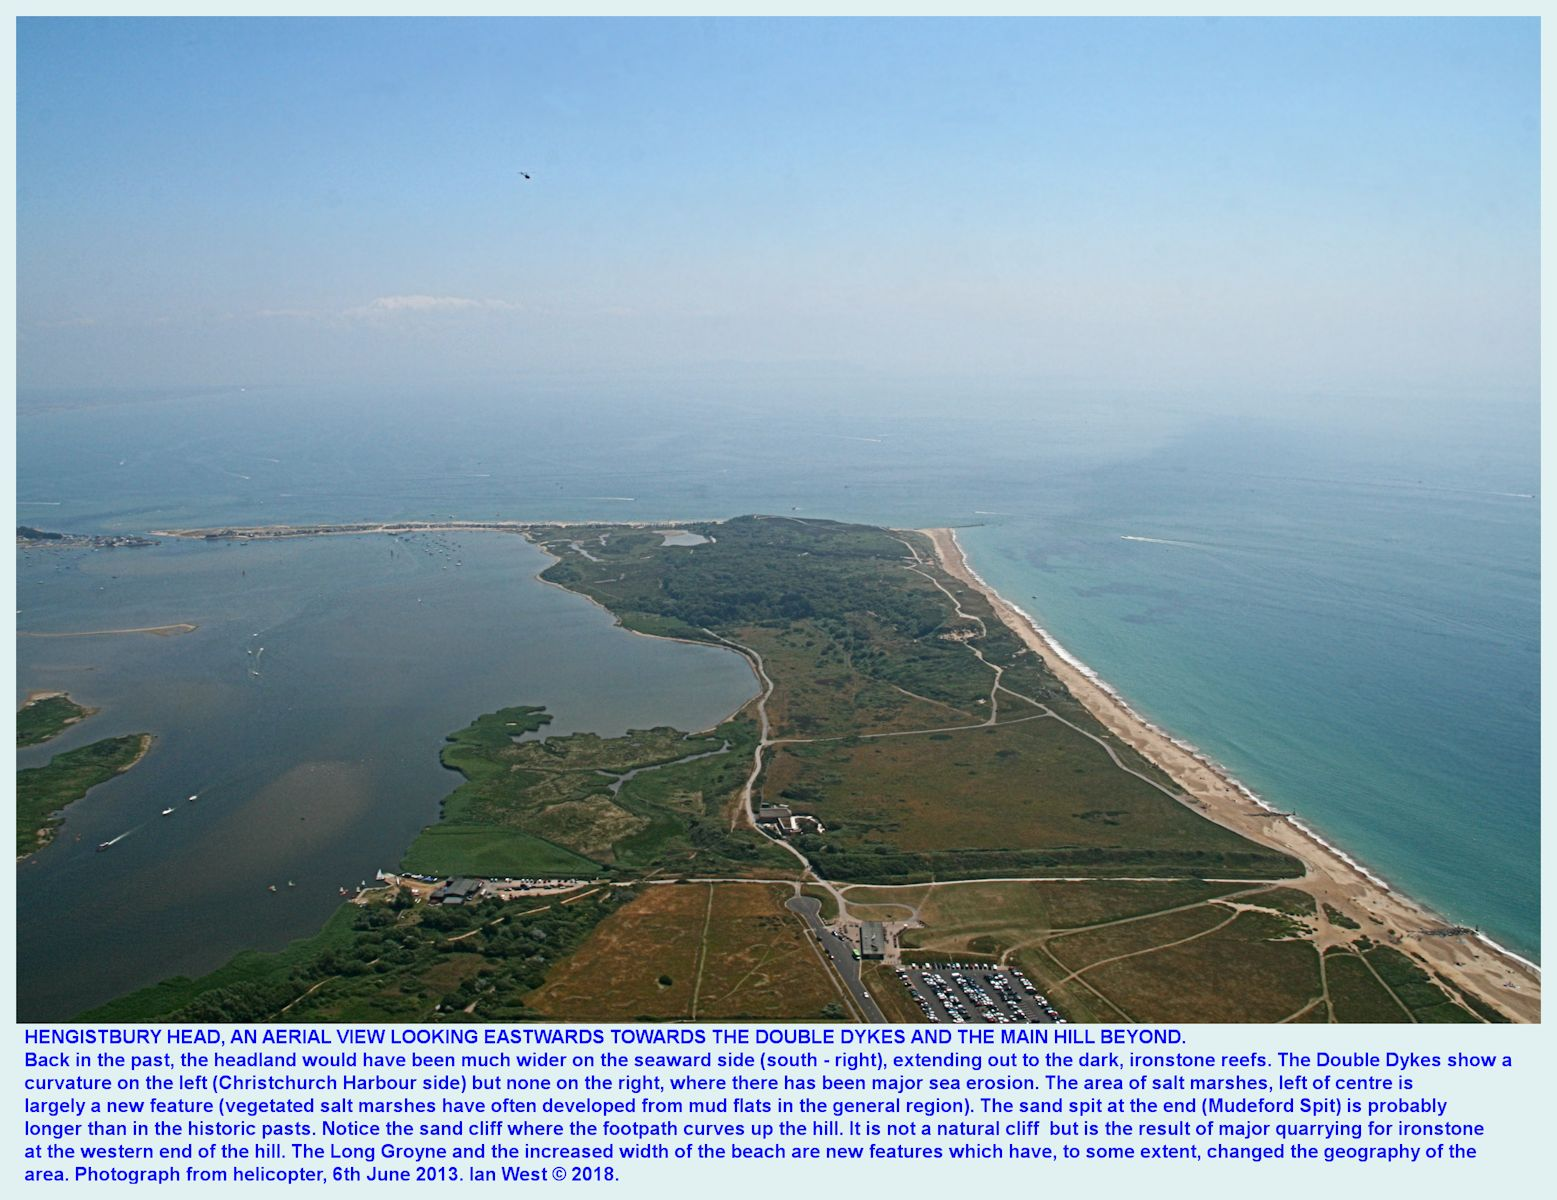 A view of Hengistbury Head, Bournemouth, Dorset, looking eastward from a helicopter, 6th June 2013